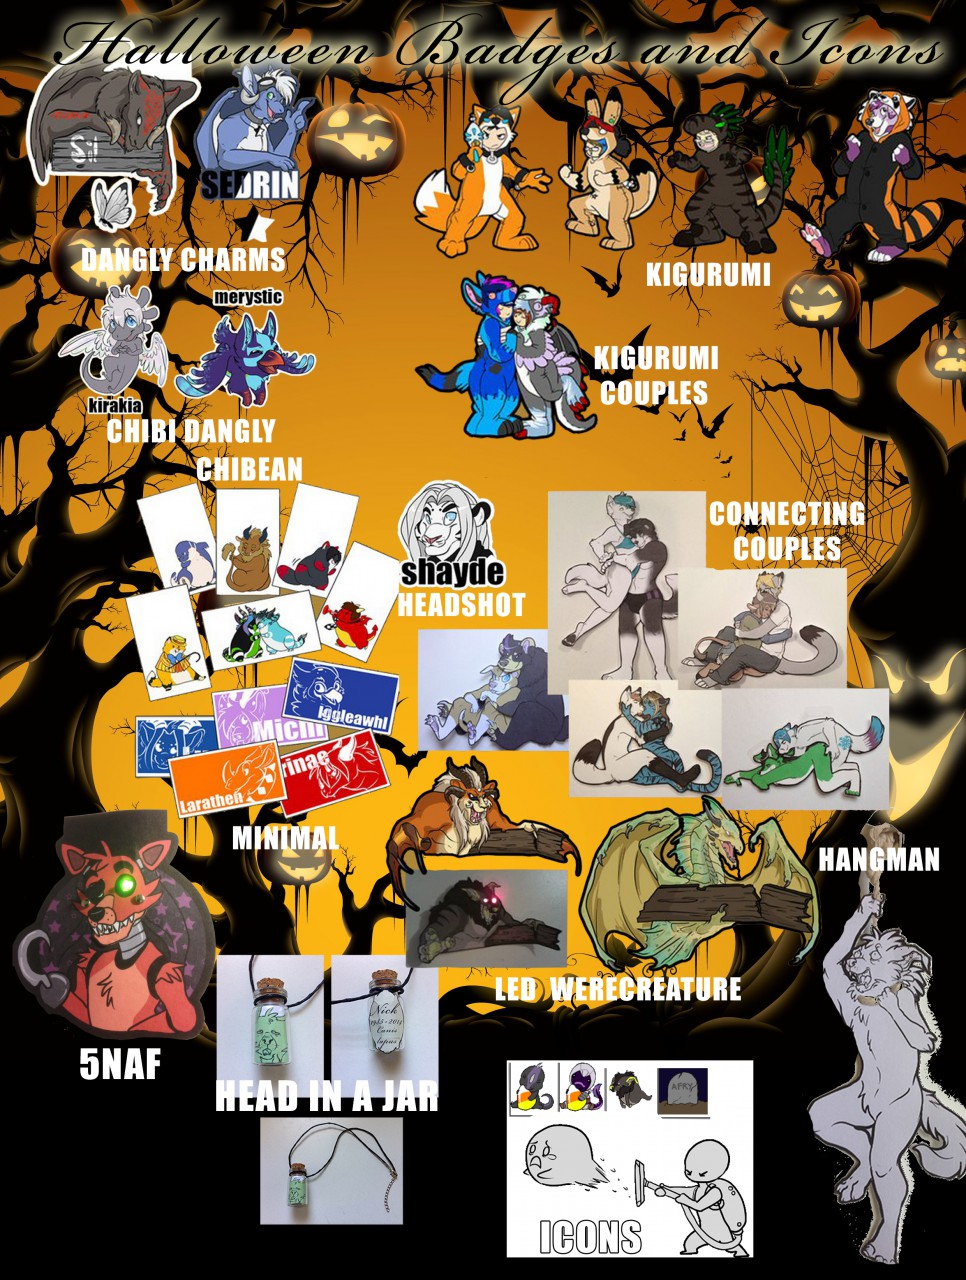 PREORDERS FOR FURPOC and UTACON (HALLOWEEN CONS)